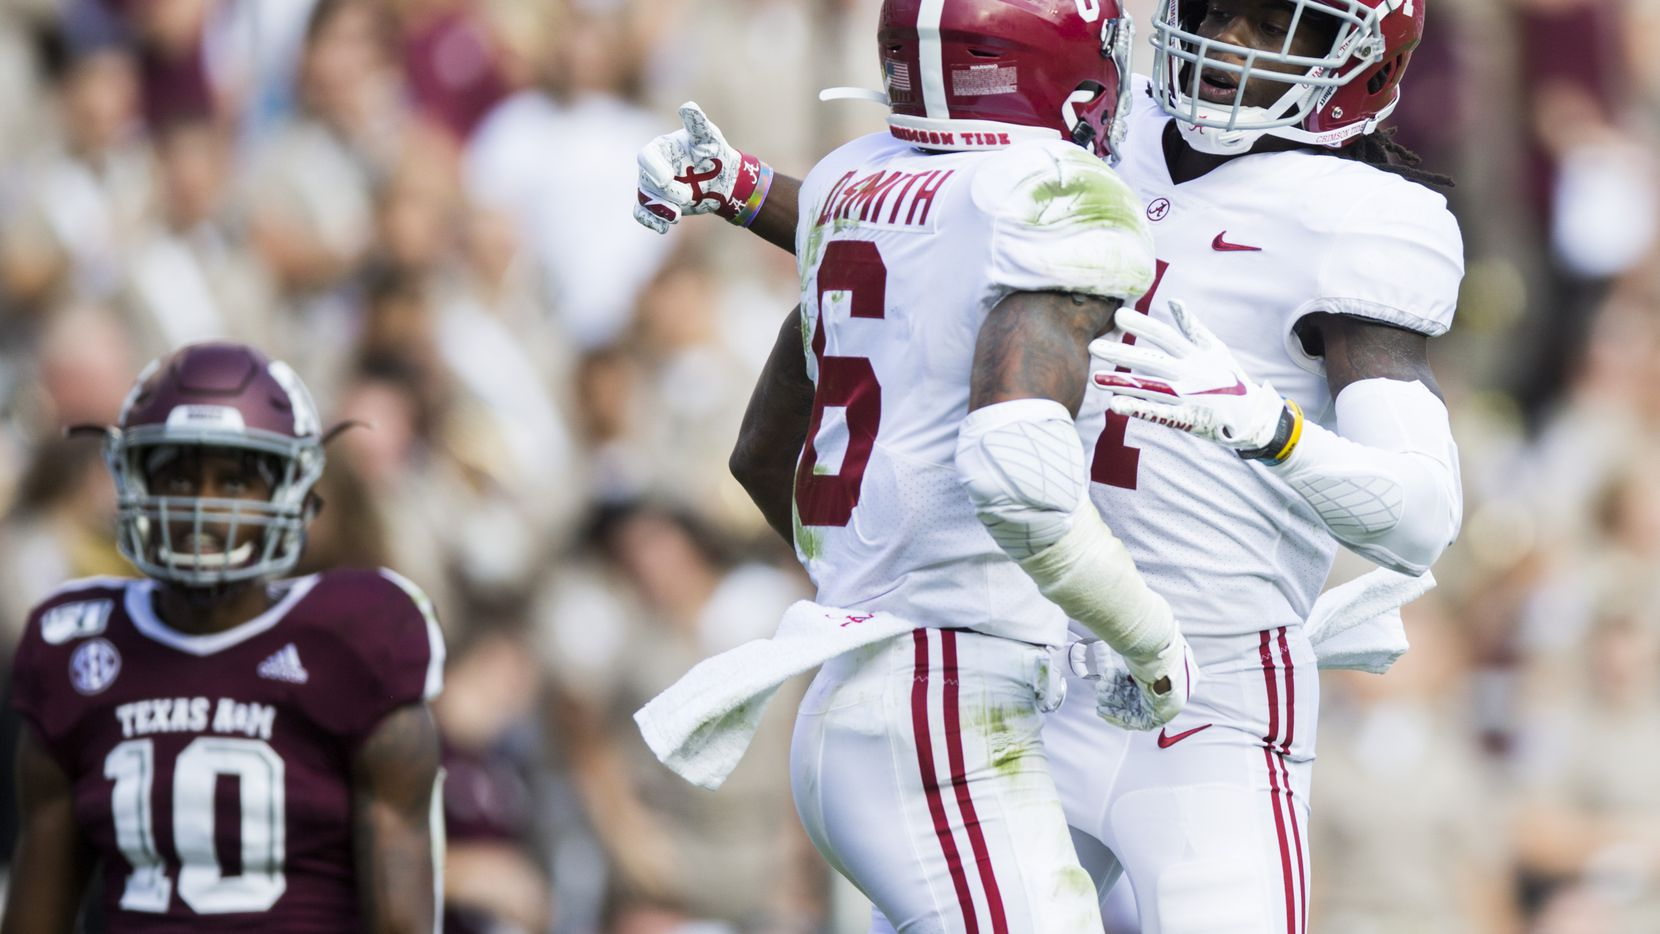 Texas A&M Aggies defensive back Myles Jones (10) rolls his eyes as Alabama Crimson Tide wide receiver DeVonta Smith (6) and wide receiver Jerry Jeudy (4) celebrate a touchdown during the first quarter of a college football game between Texas A&M and Alabama on Saturday, October 12, 2019 at Kyle Field in College Station, Texas.